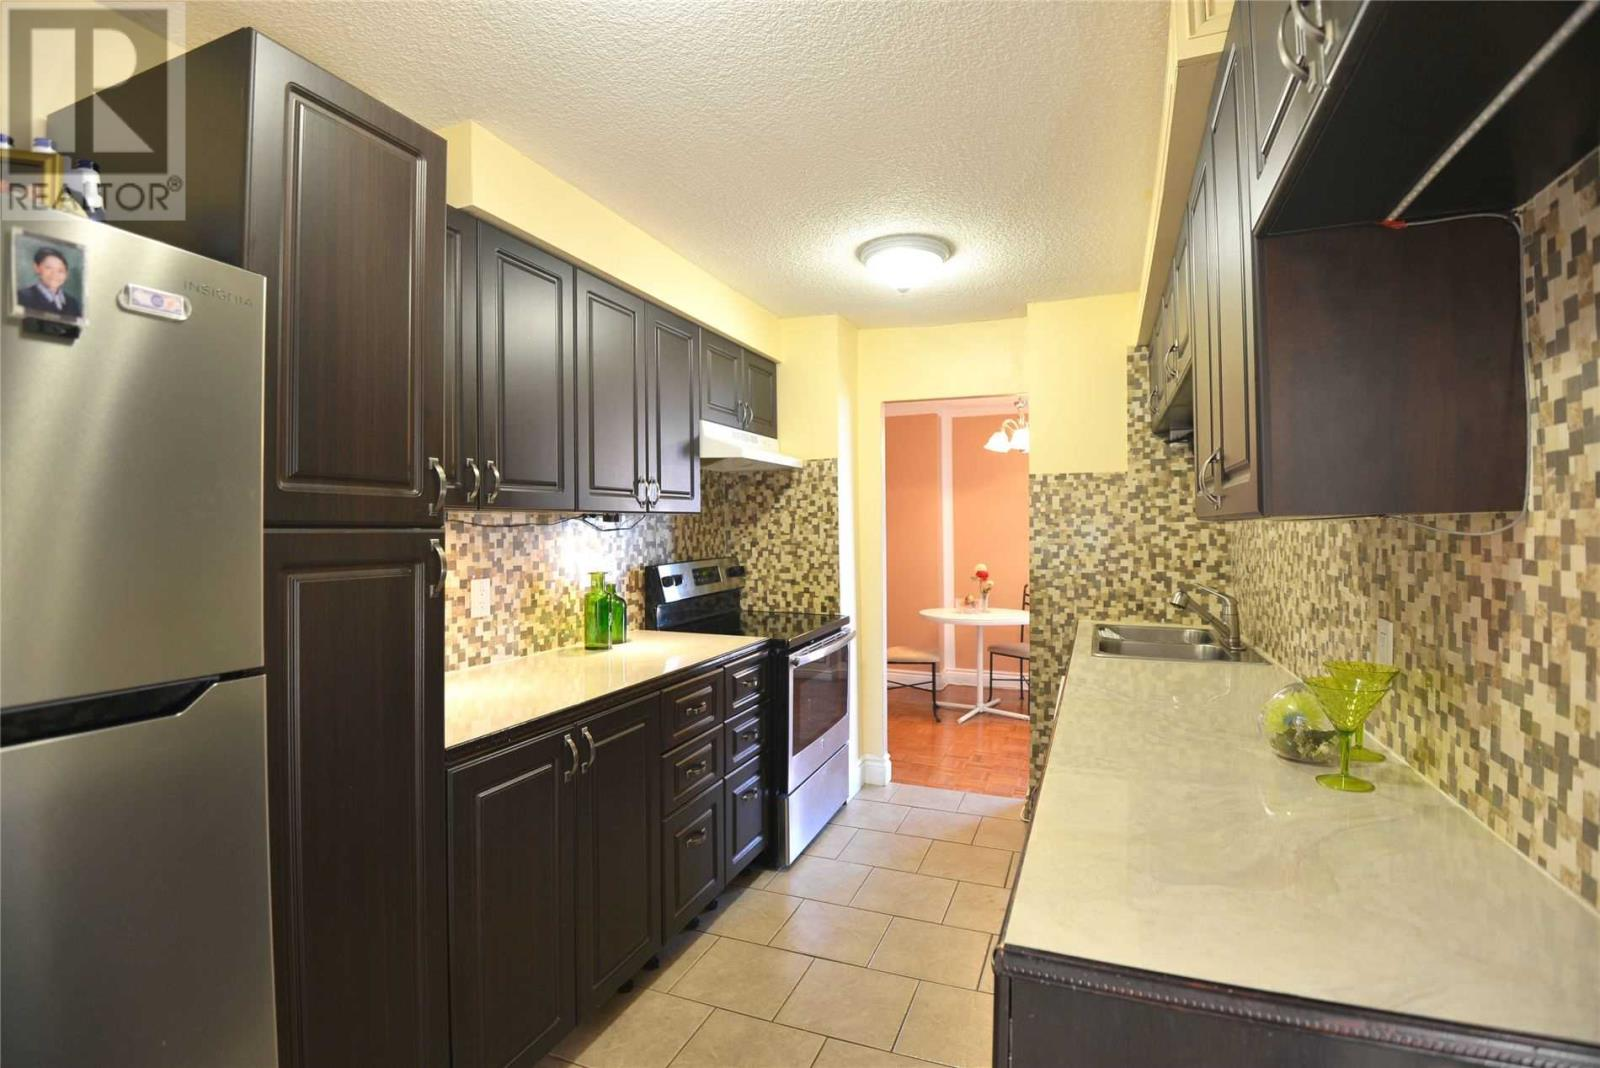 #803 -3170 Kirwin Ave, Mississauga, Ontario  L5A 3R1 - Photo 2 - W4667390